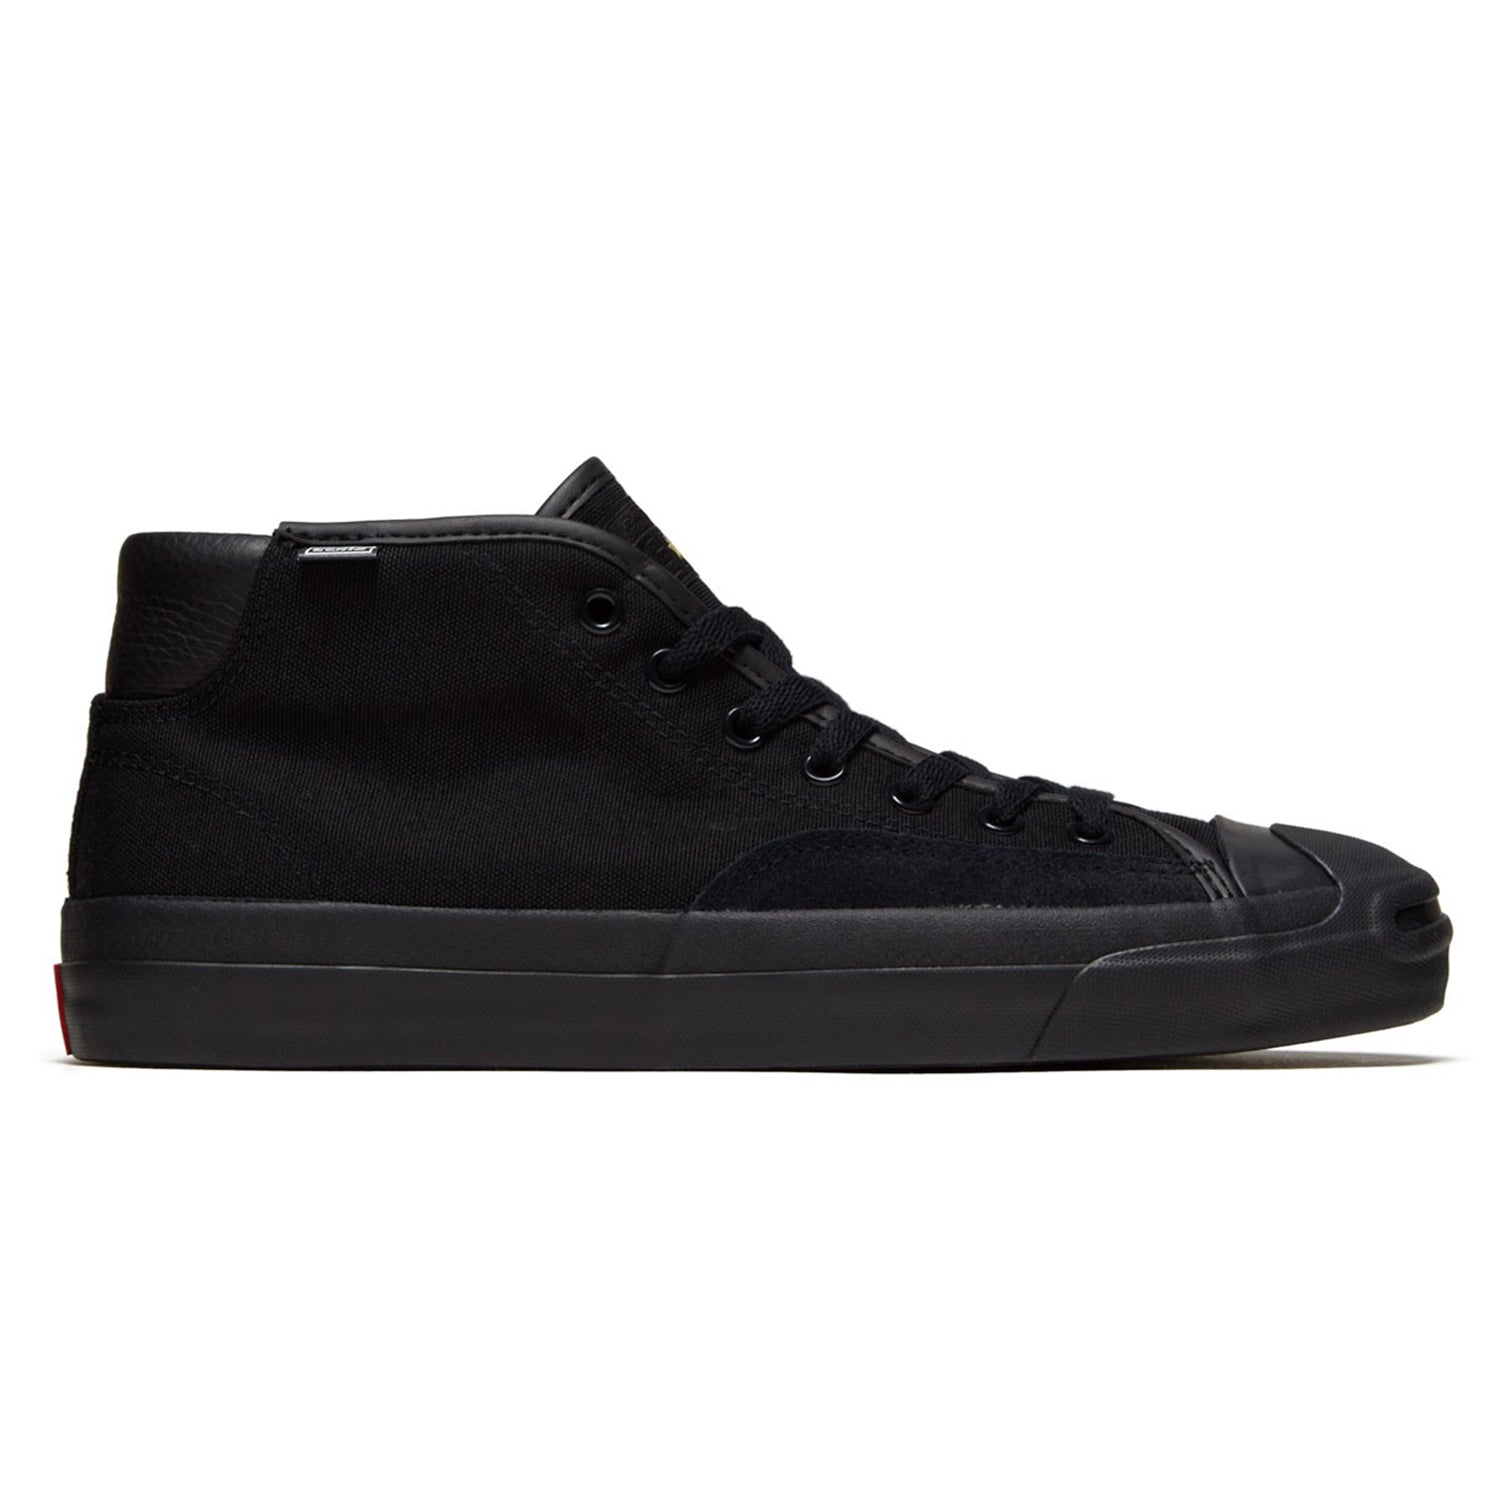 Converse CONS Jack Purcell Pro Mid Alexis Sablone (Black/Enamel Red)